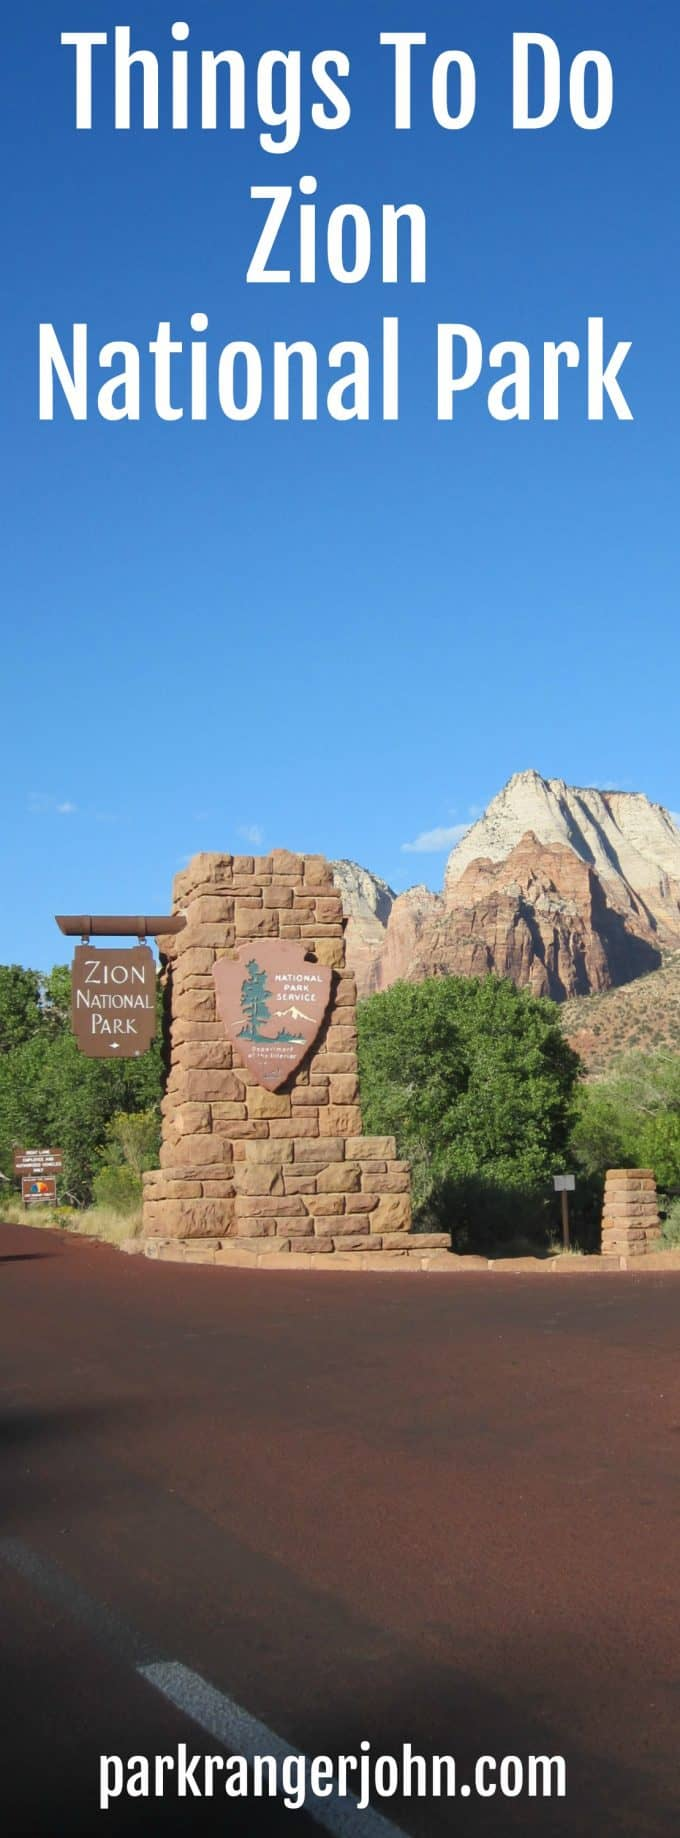 Things to do in Zion National Park Utah. Activities include camping, lodging, tips from a park ranger, hikes including the narrows, angels landing and the subway and bicycling.